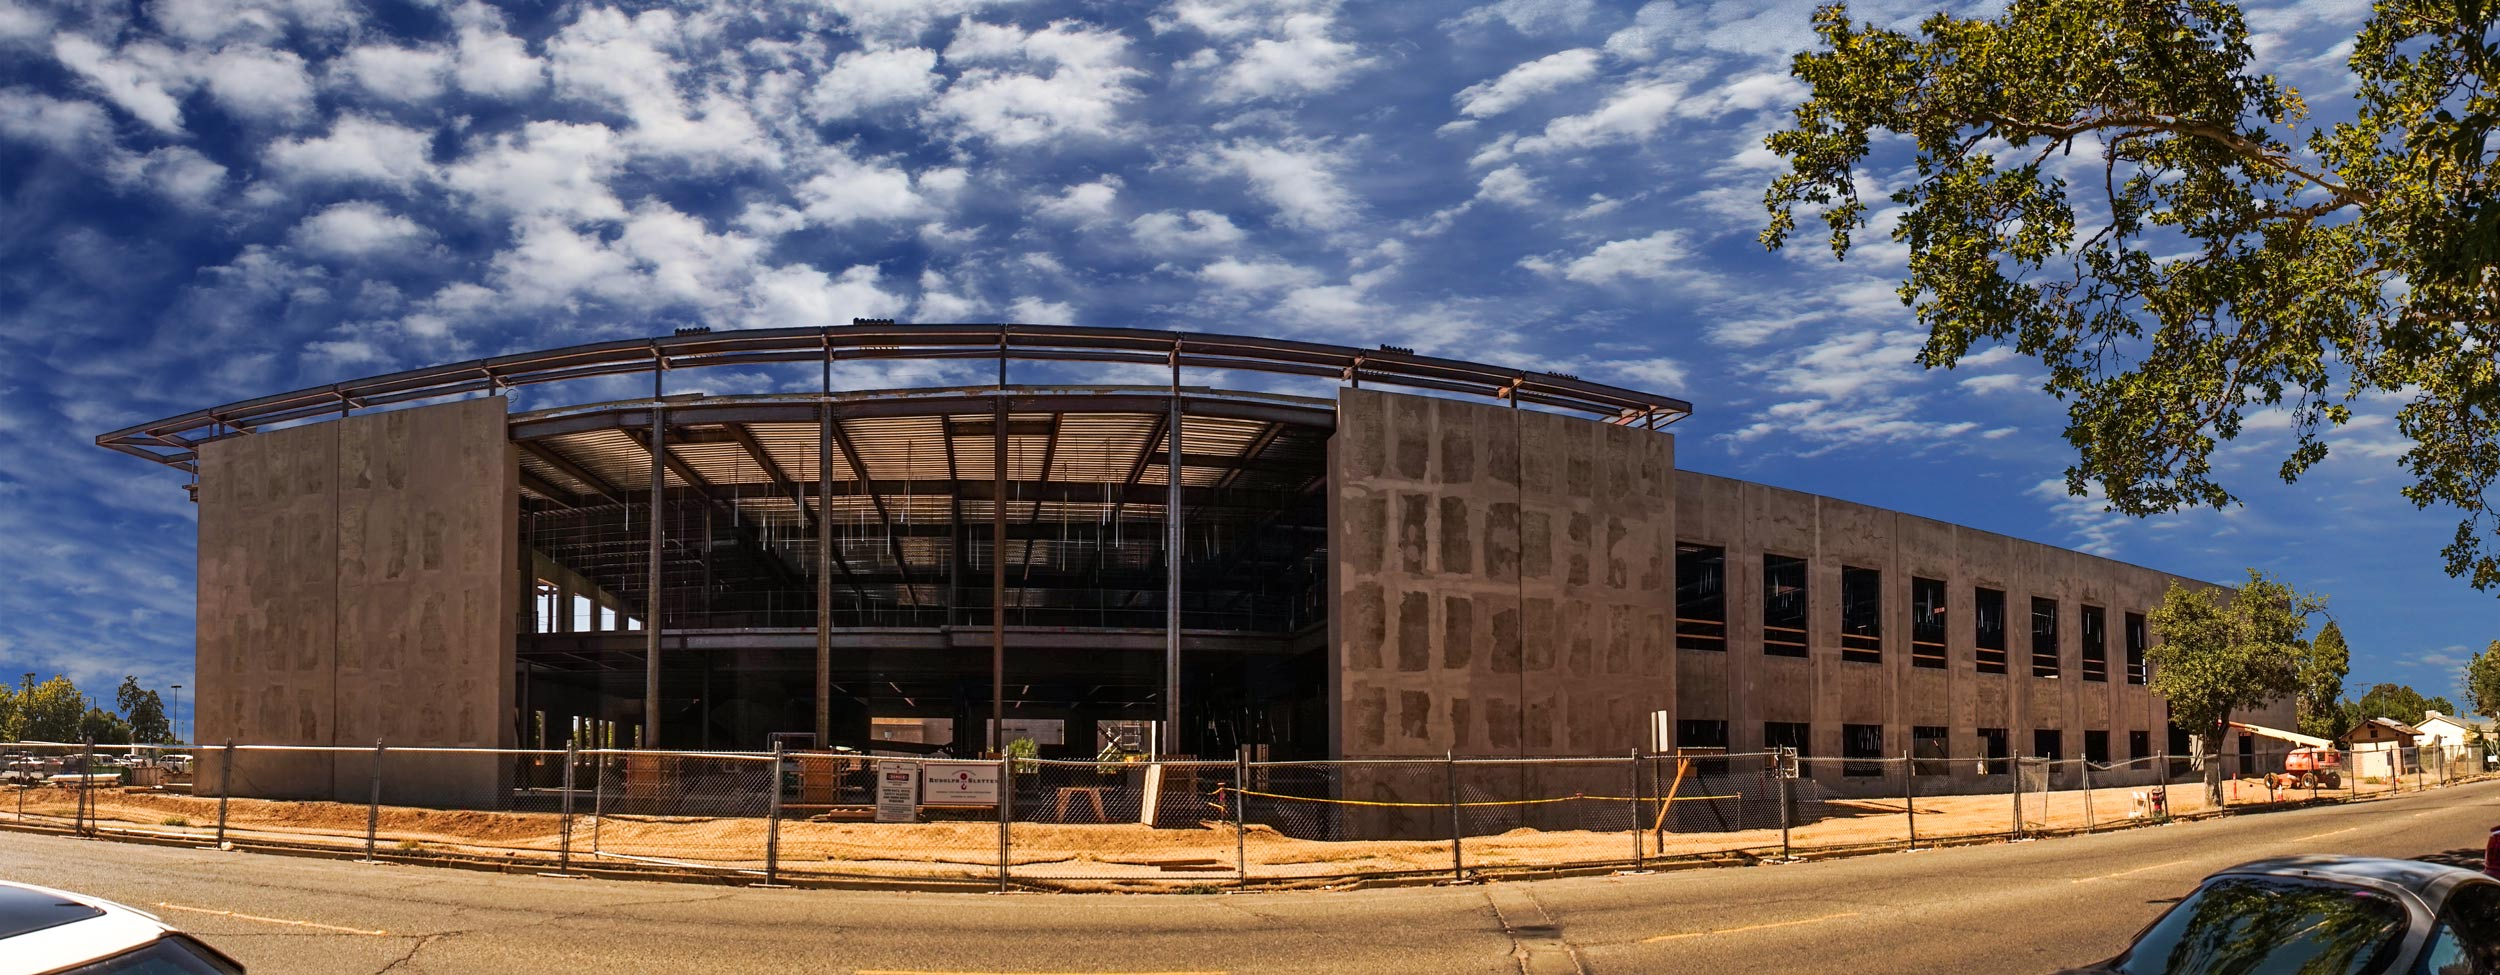 The New Tehama County Courthouse